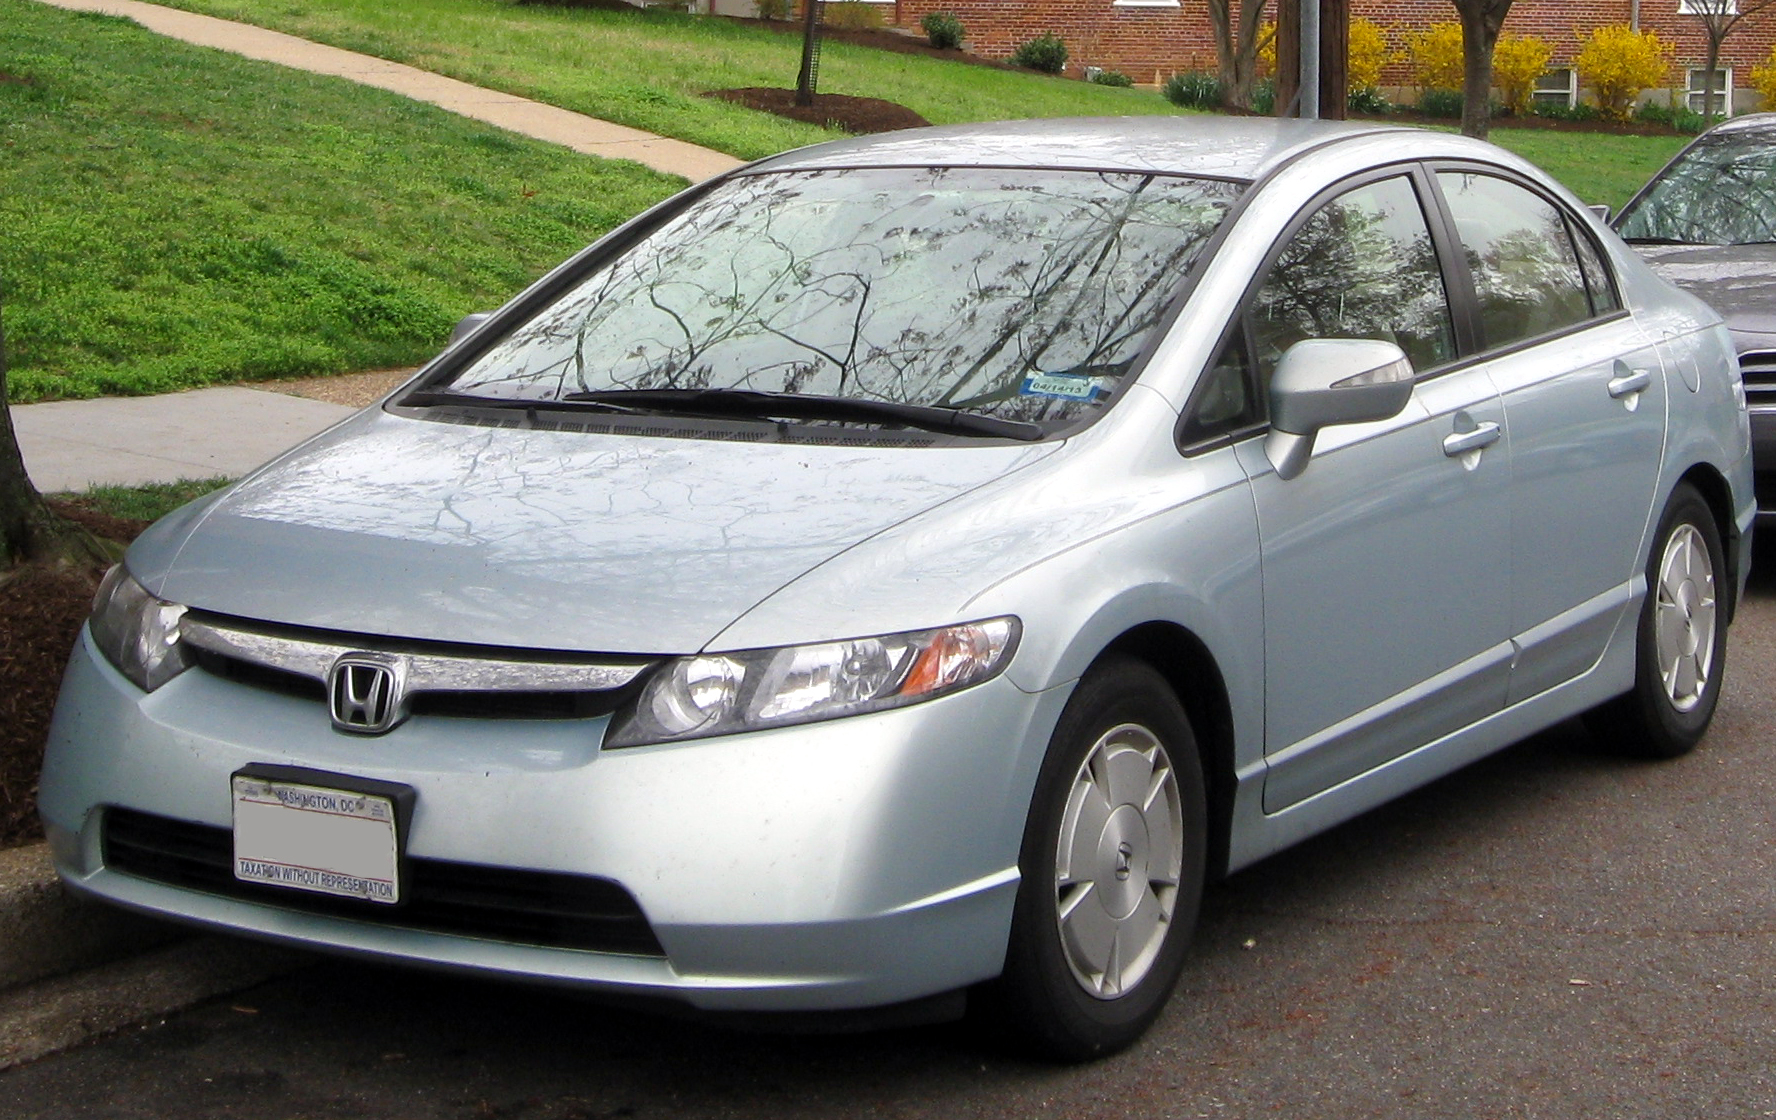 2008 Honda Civic #6